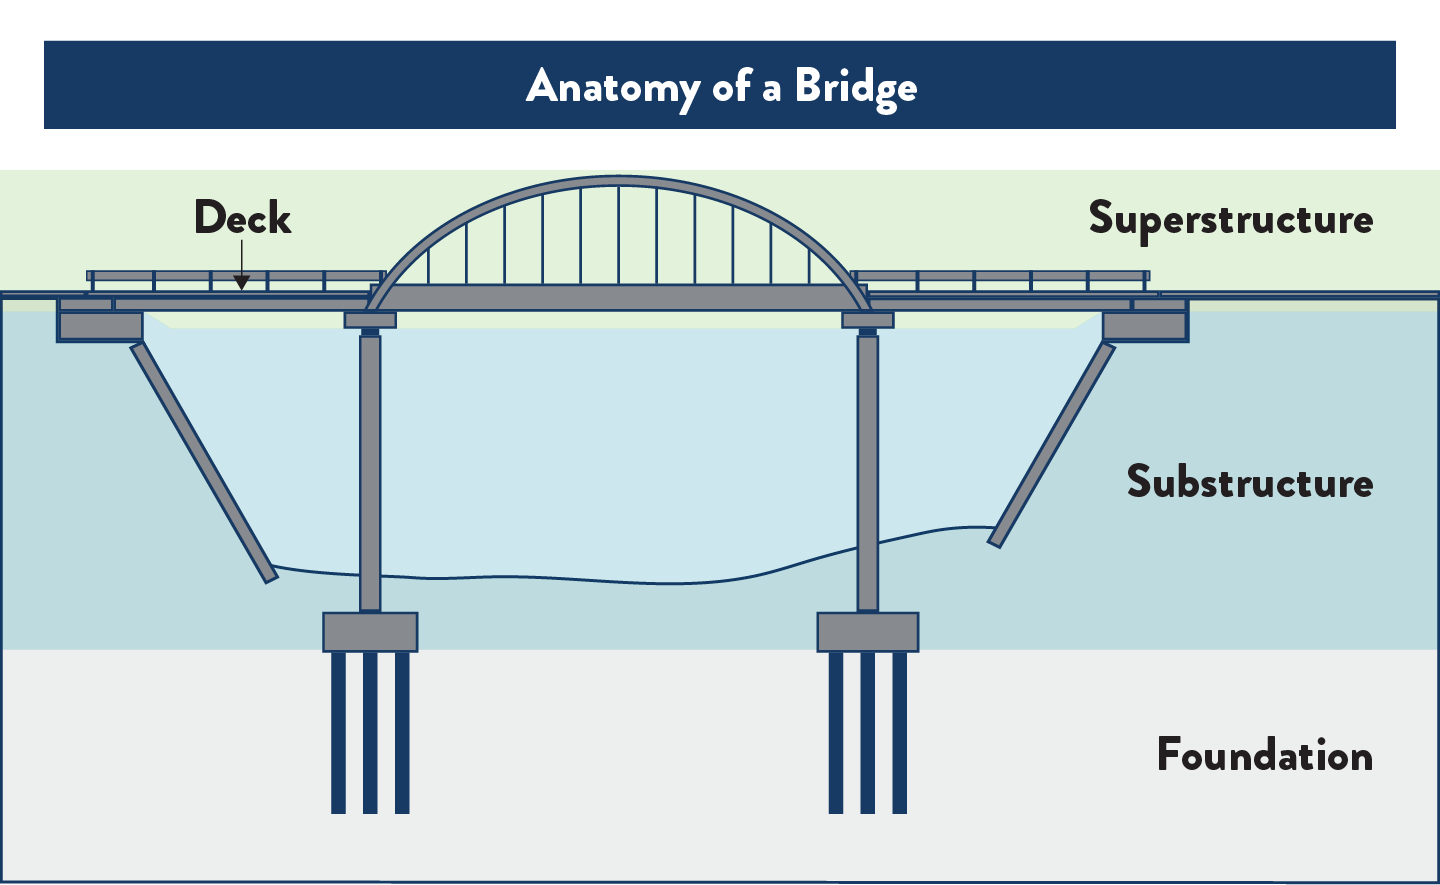 what is the superstructure of a bridge